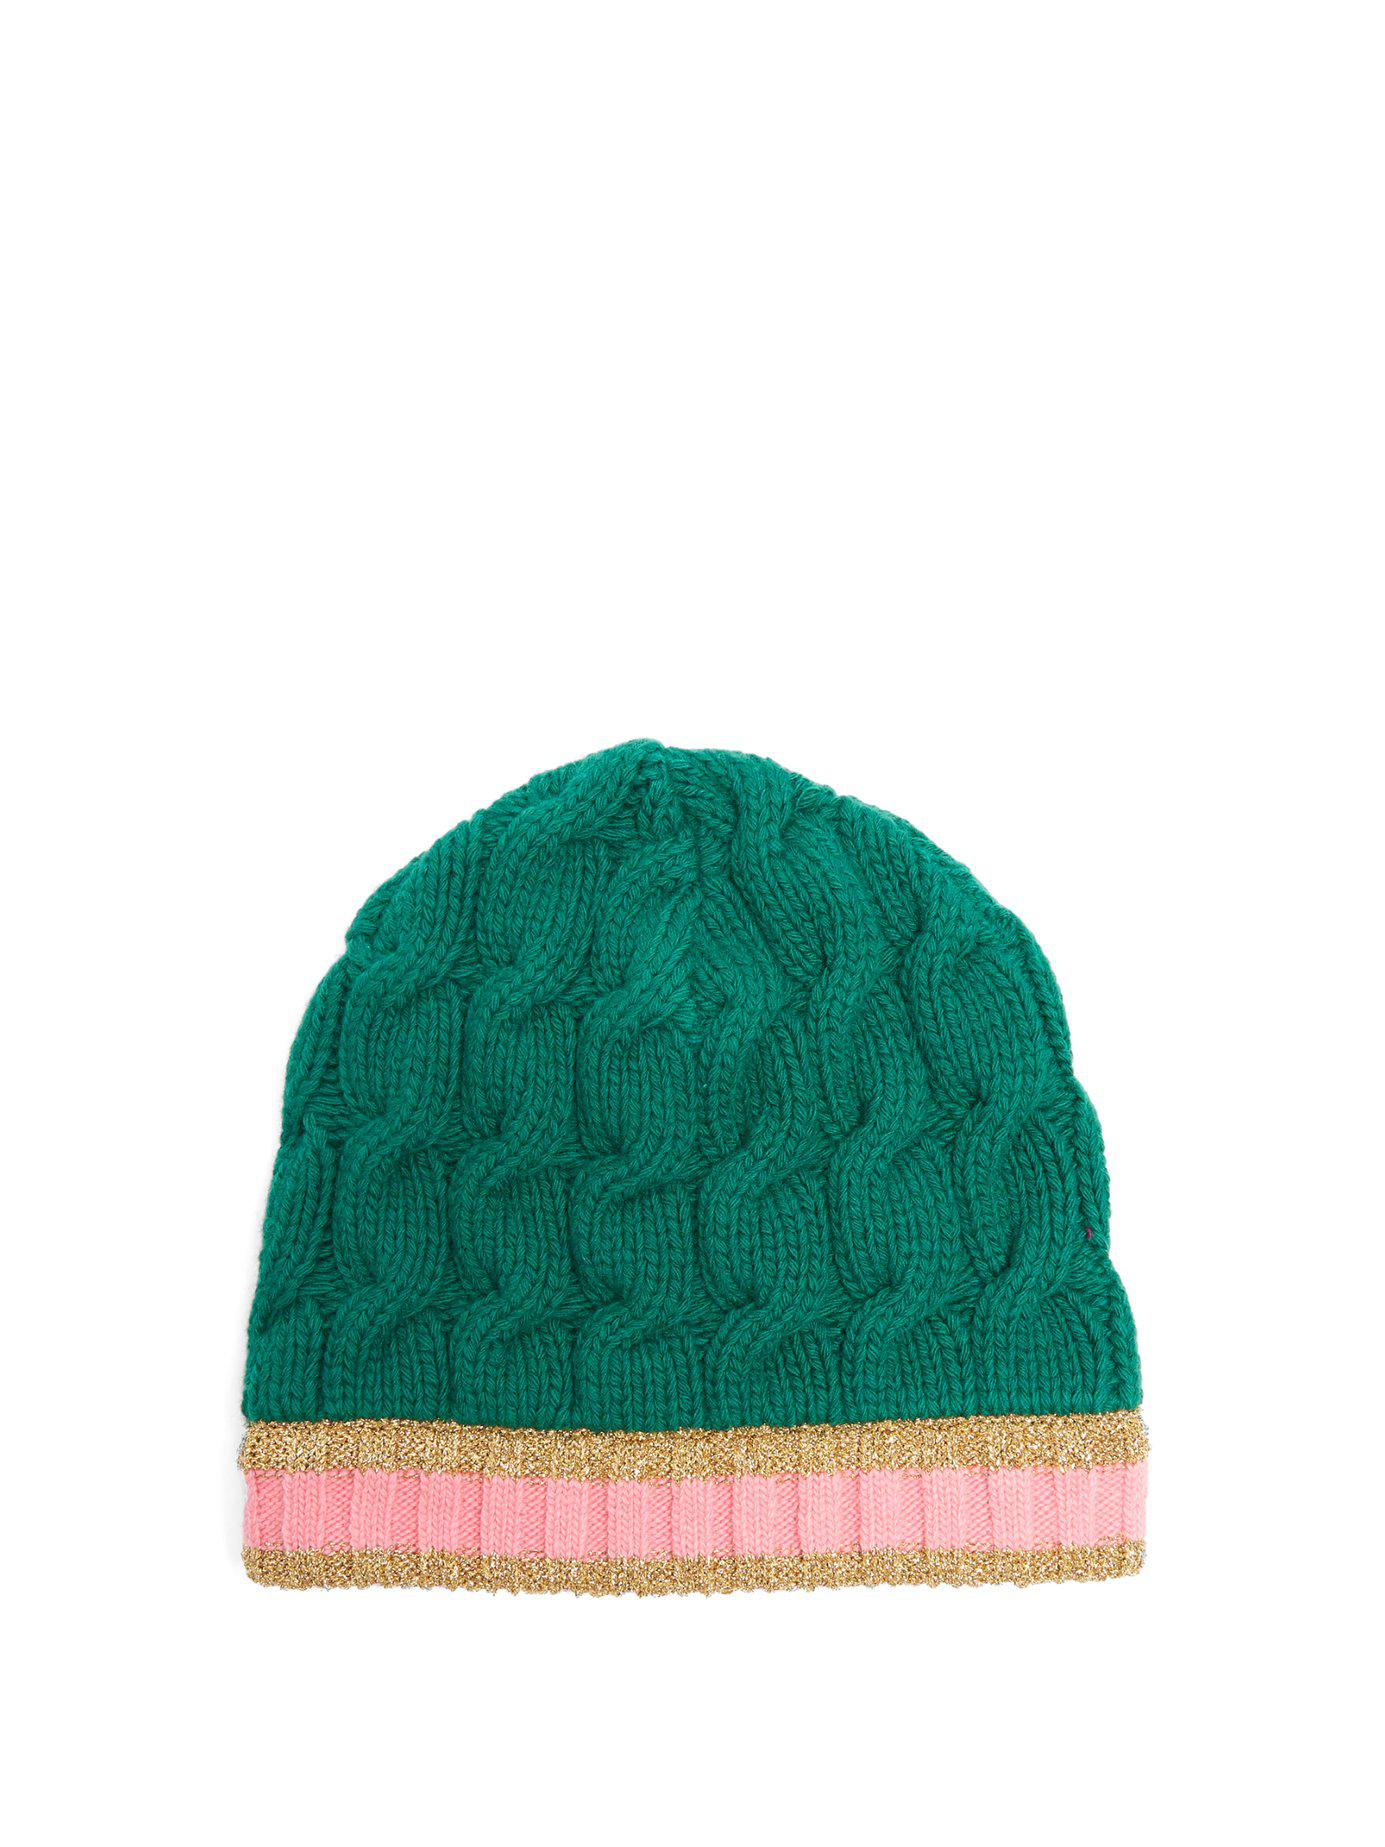 32bf8fdb Gucci Cable Knit Beanie Hat in Green - Lyst